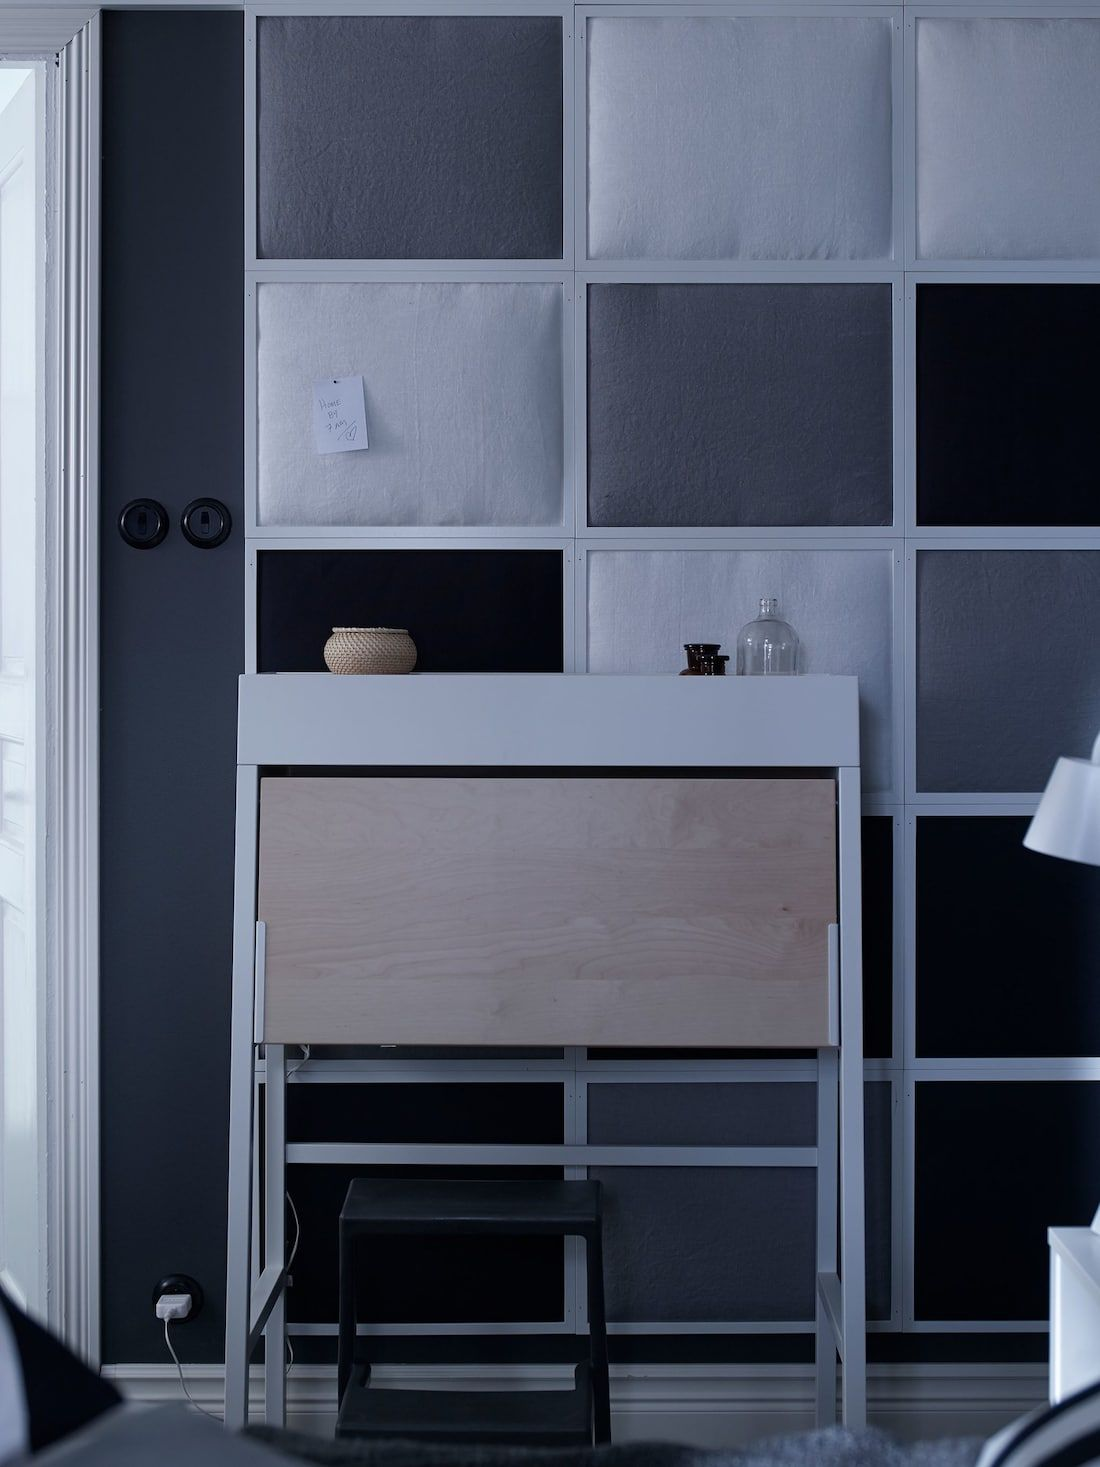 How To Soundproof Your Bedroom In Two Ways